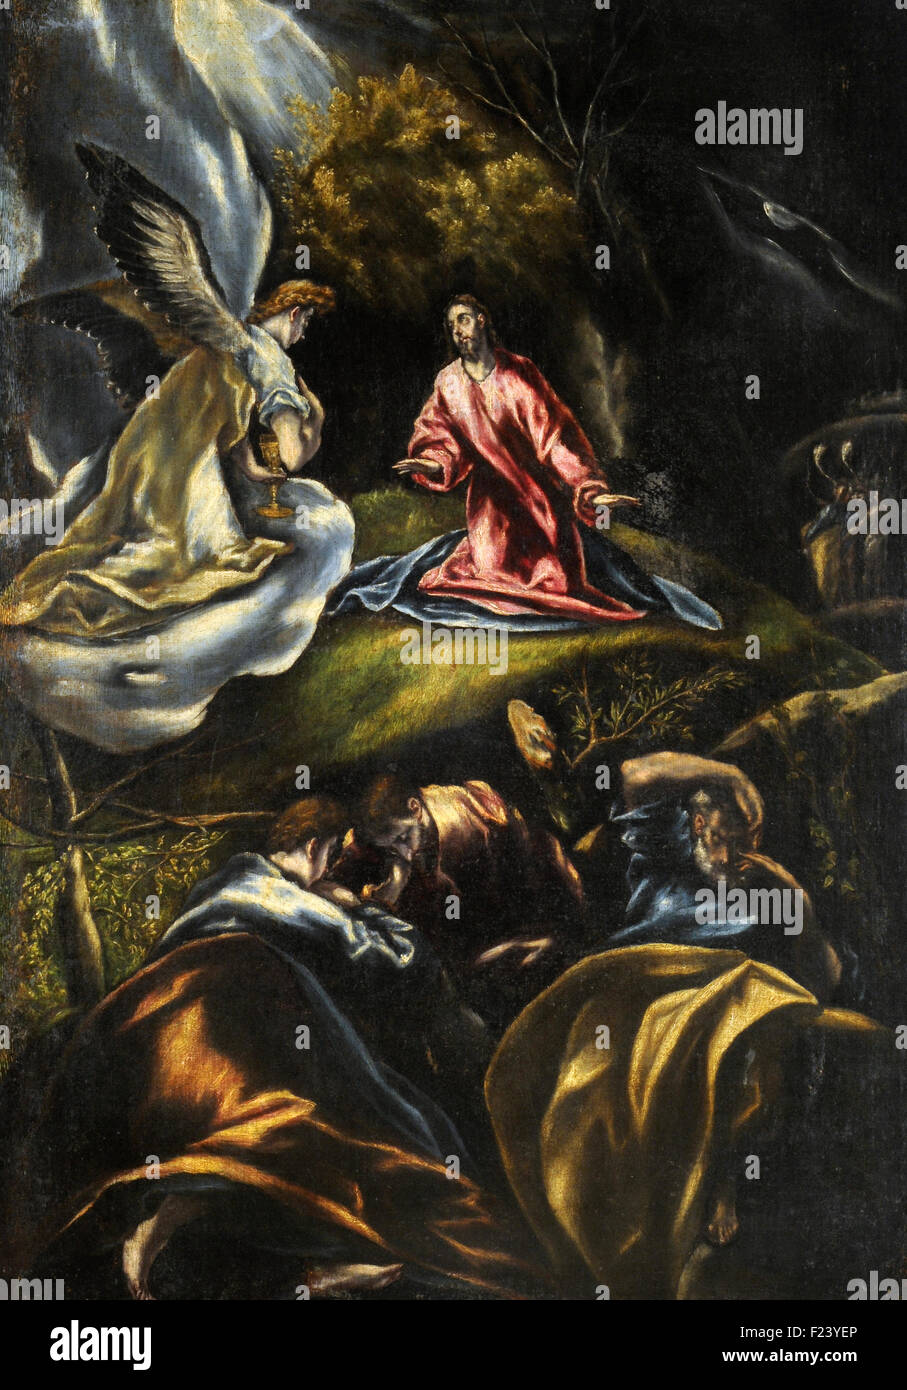 el greco the agony in the garden stock image - Agony In The Garden